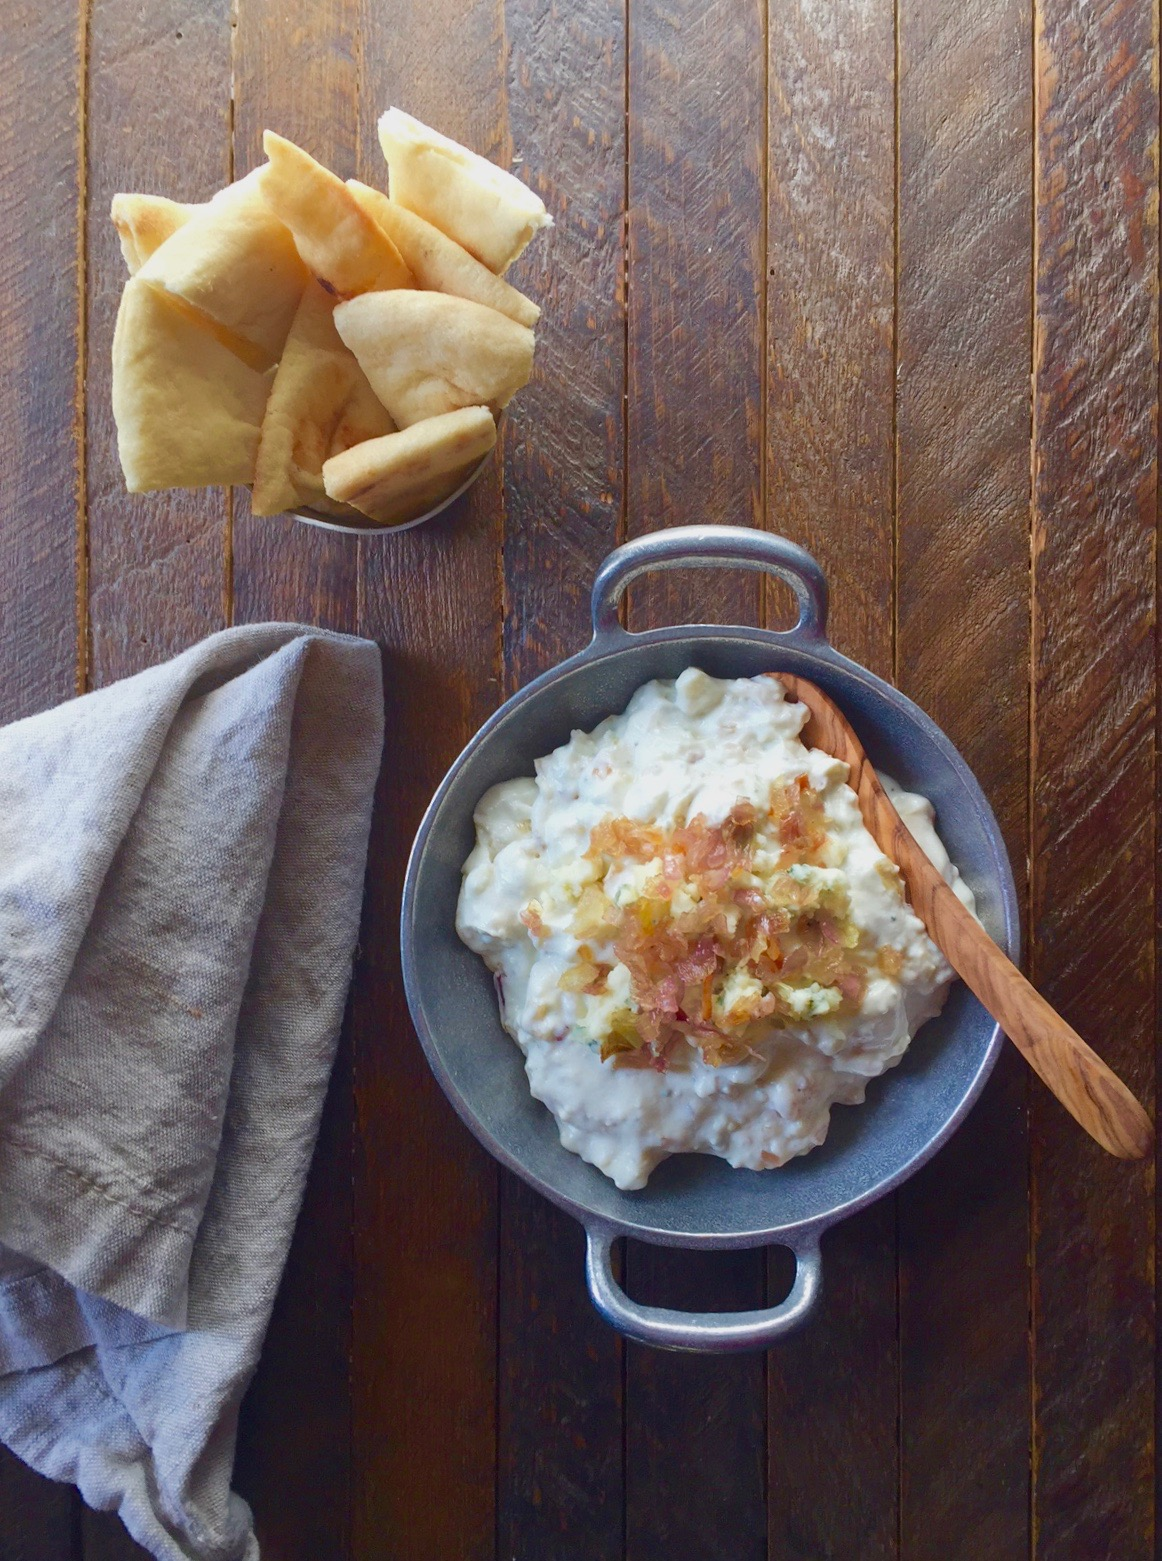 Caramelized Shallots and Gorgonzola Dip